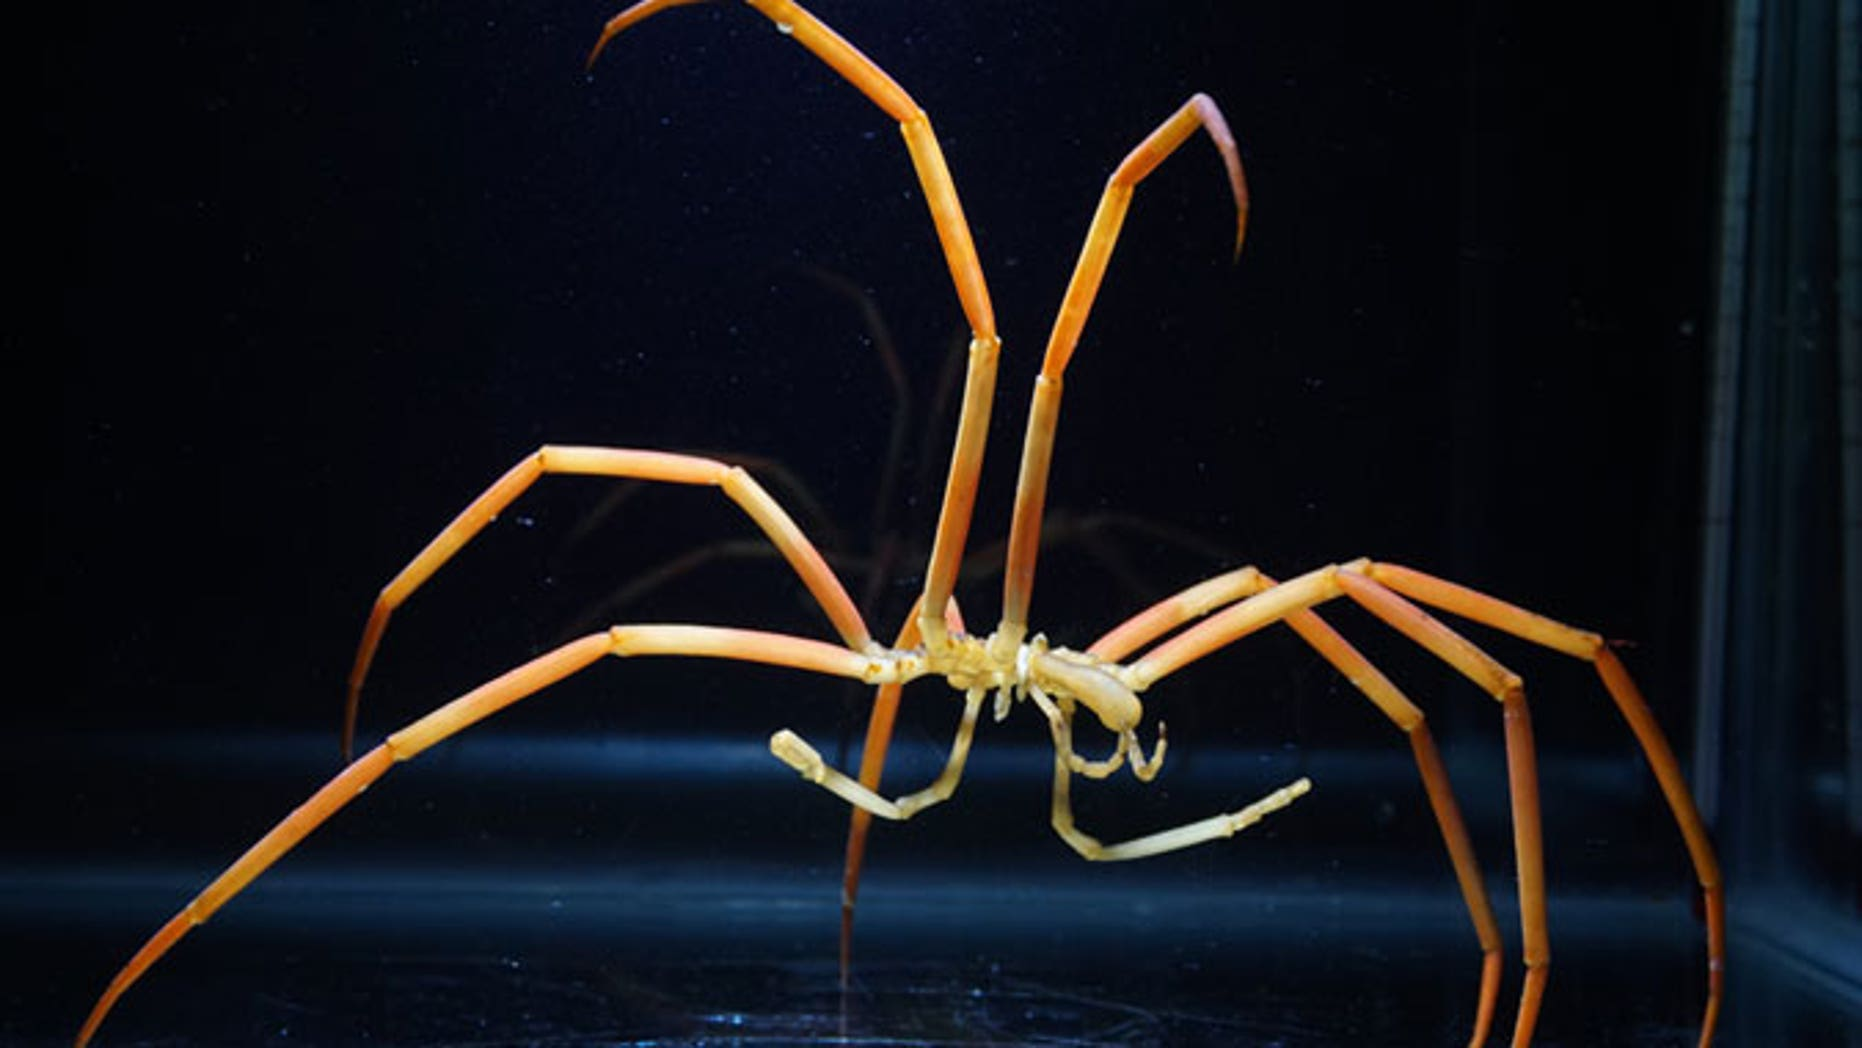 The hulk sea spider (lt;igt;Colossendeis robustalt;/igt;) has a special approach of removing adequate oxygen in a cold Antarctic.